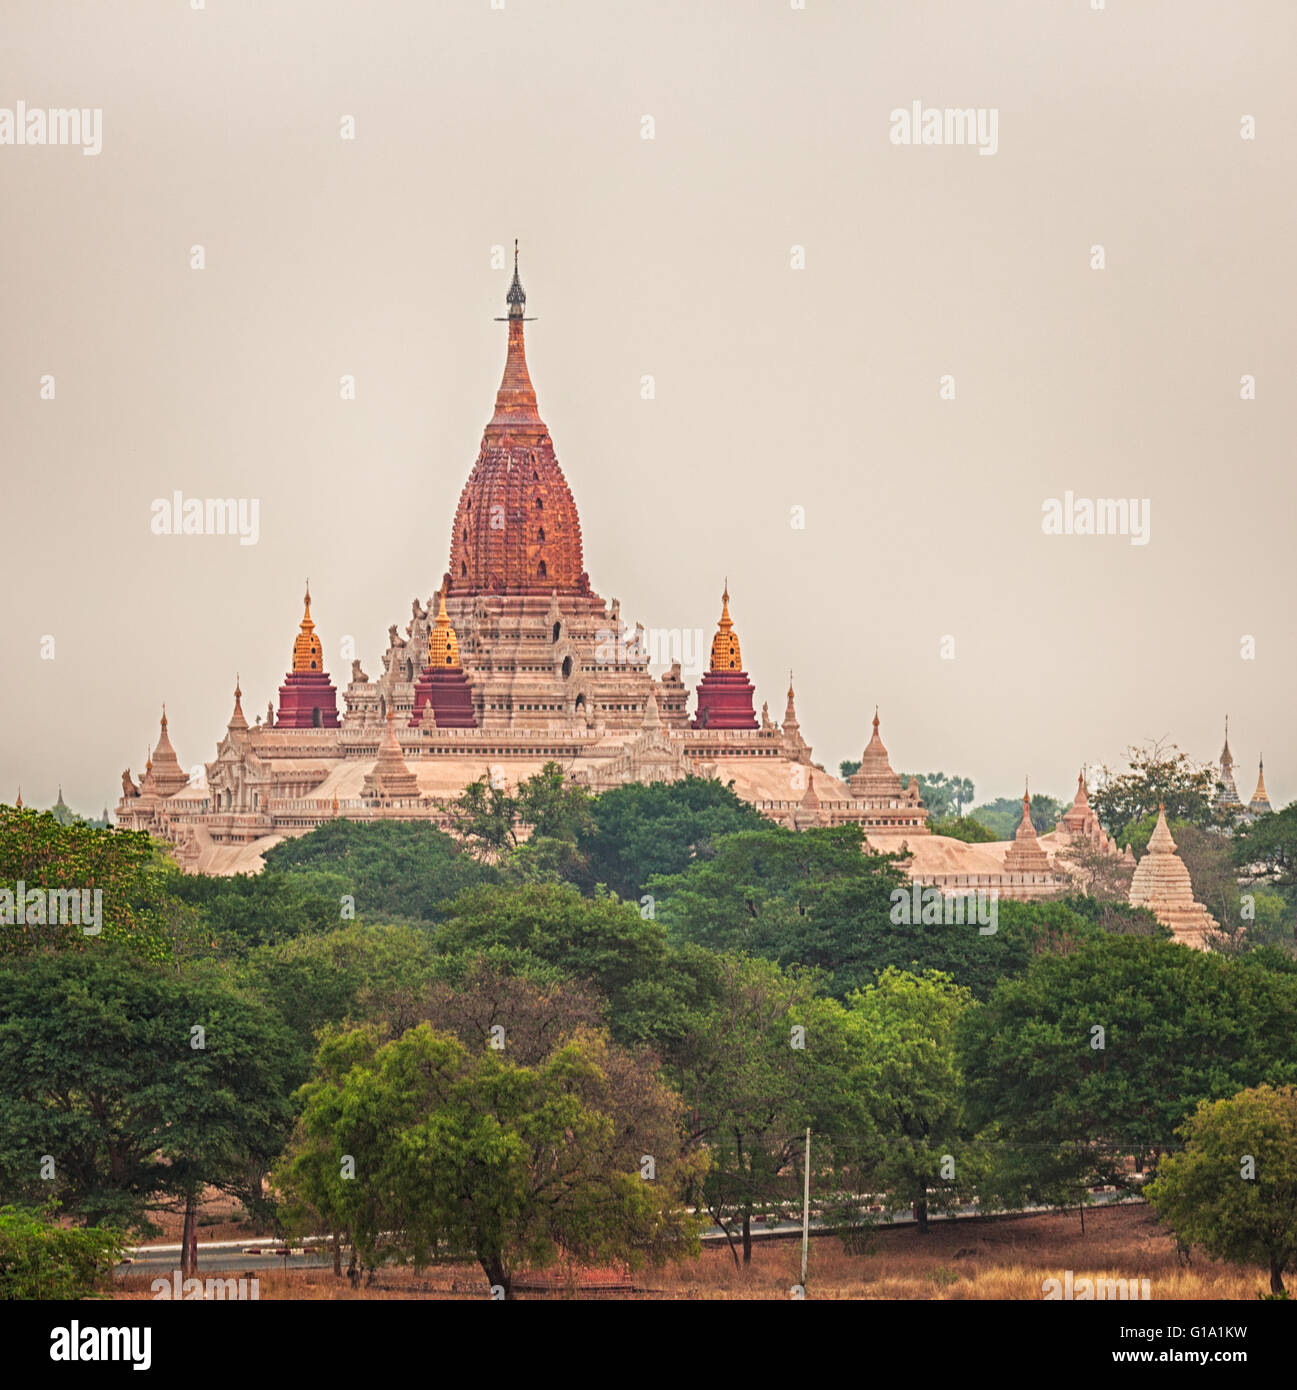 View from the Shwesandaw in Bagan. Myanmar. - Stock Image